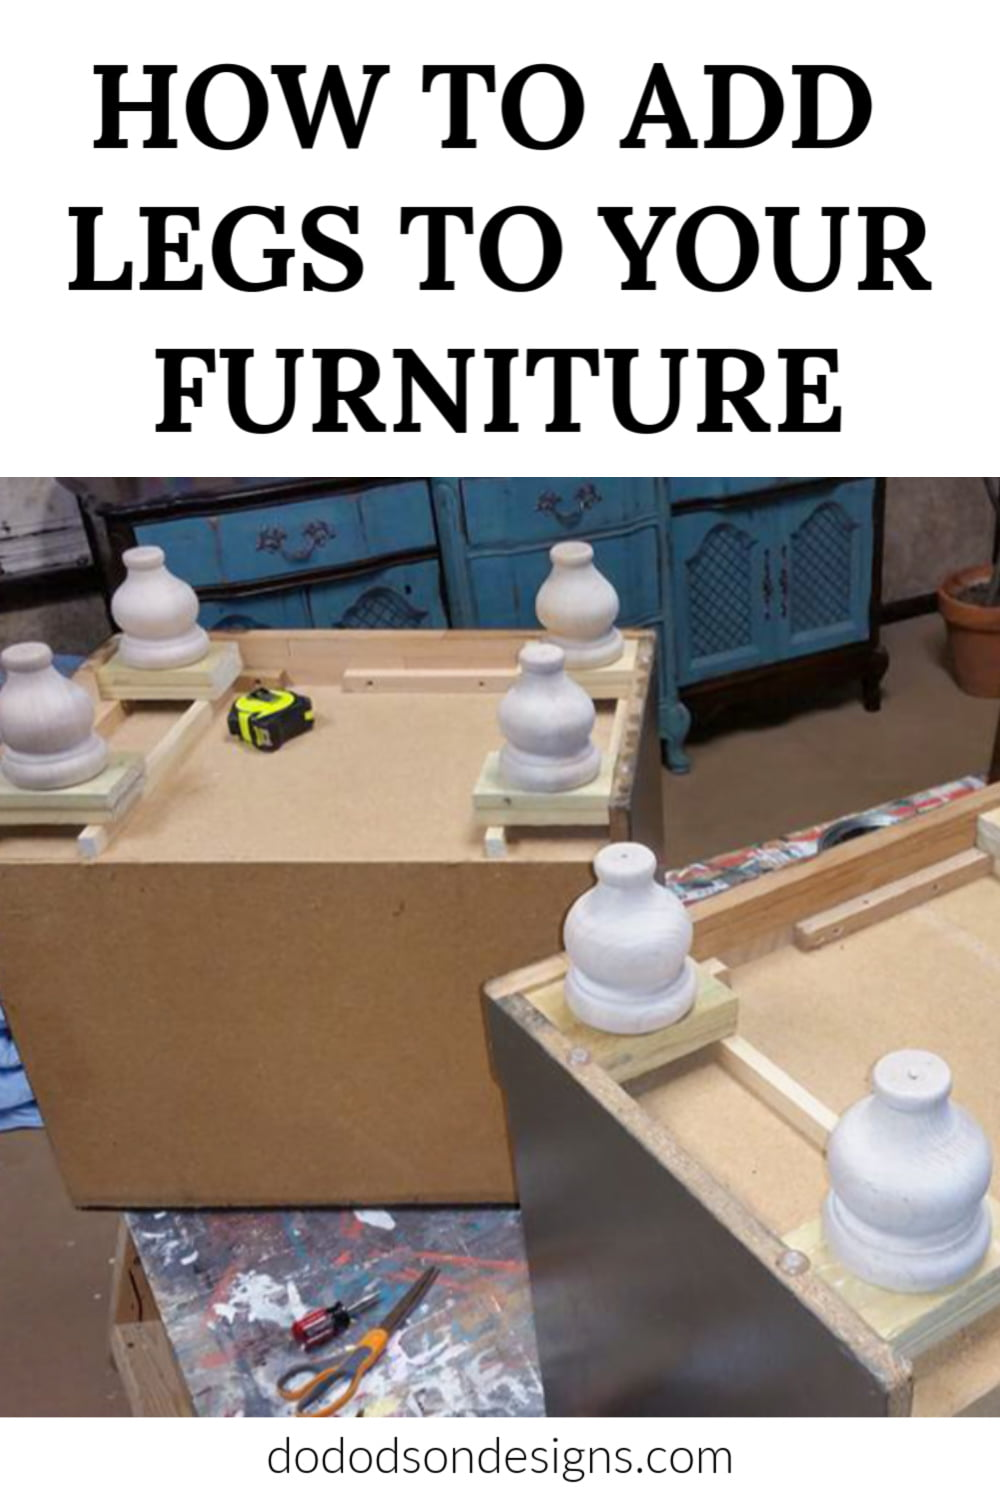 It\'s too short! Why not add legs to furniture and bring it up to date with the current styles instead of buying new? I\'ll show you how!